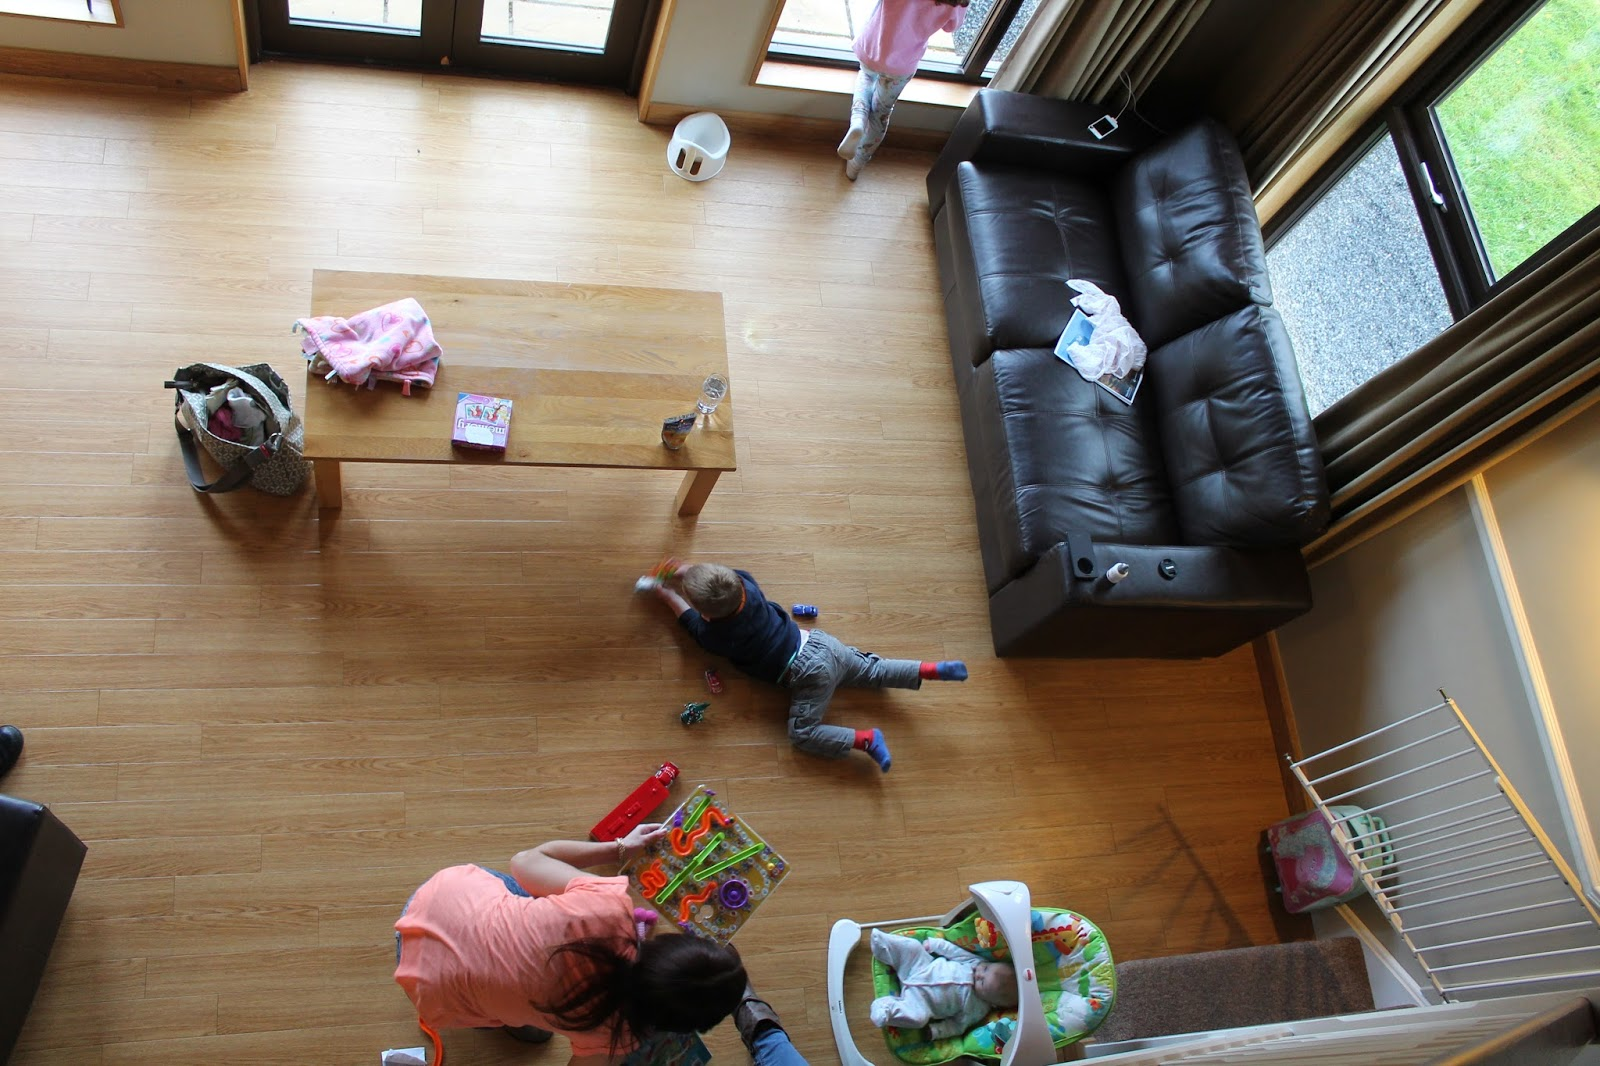 Aerial view of living room with child playing with cars sleeping baby and girl staring out of window